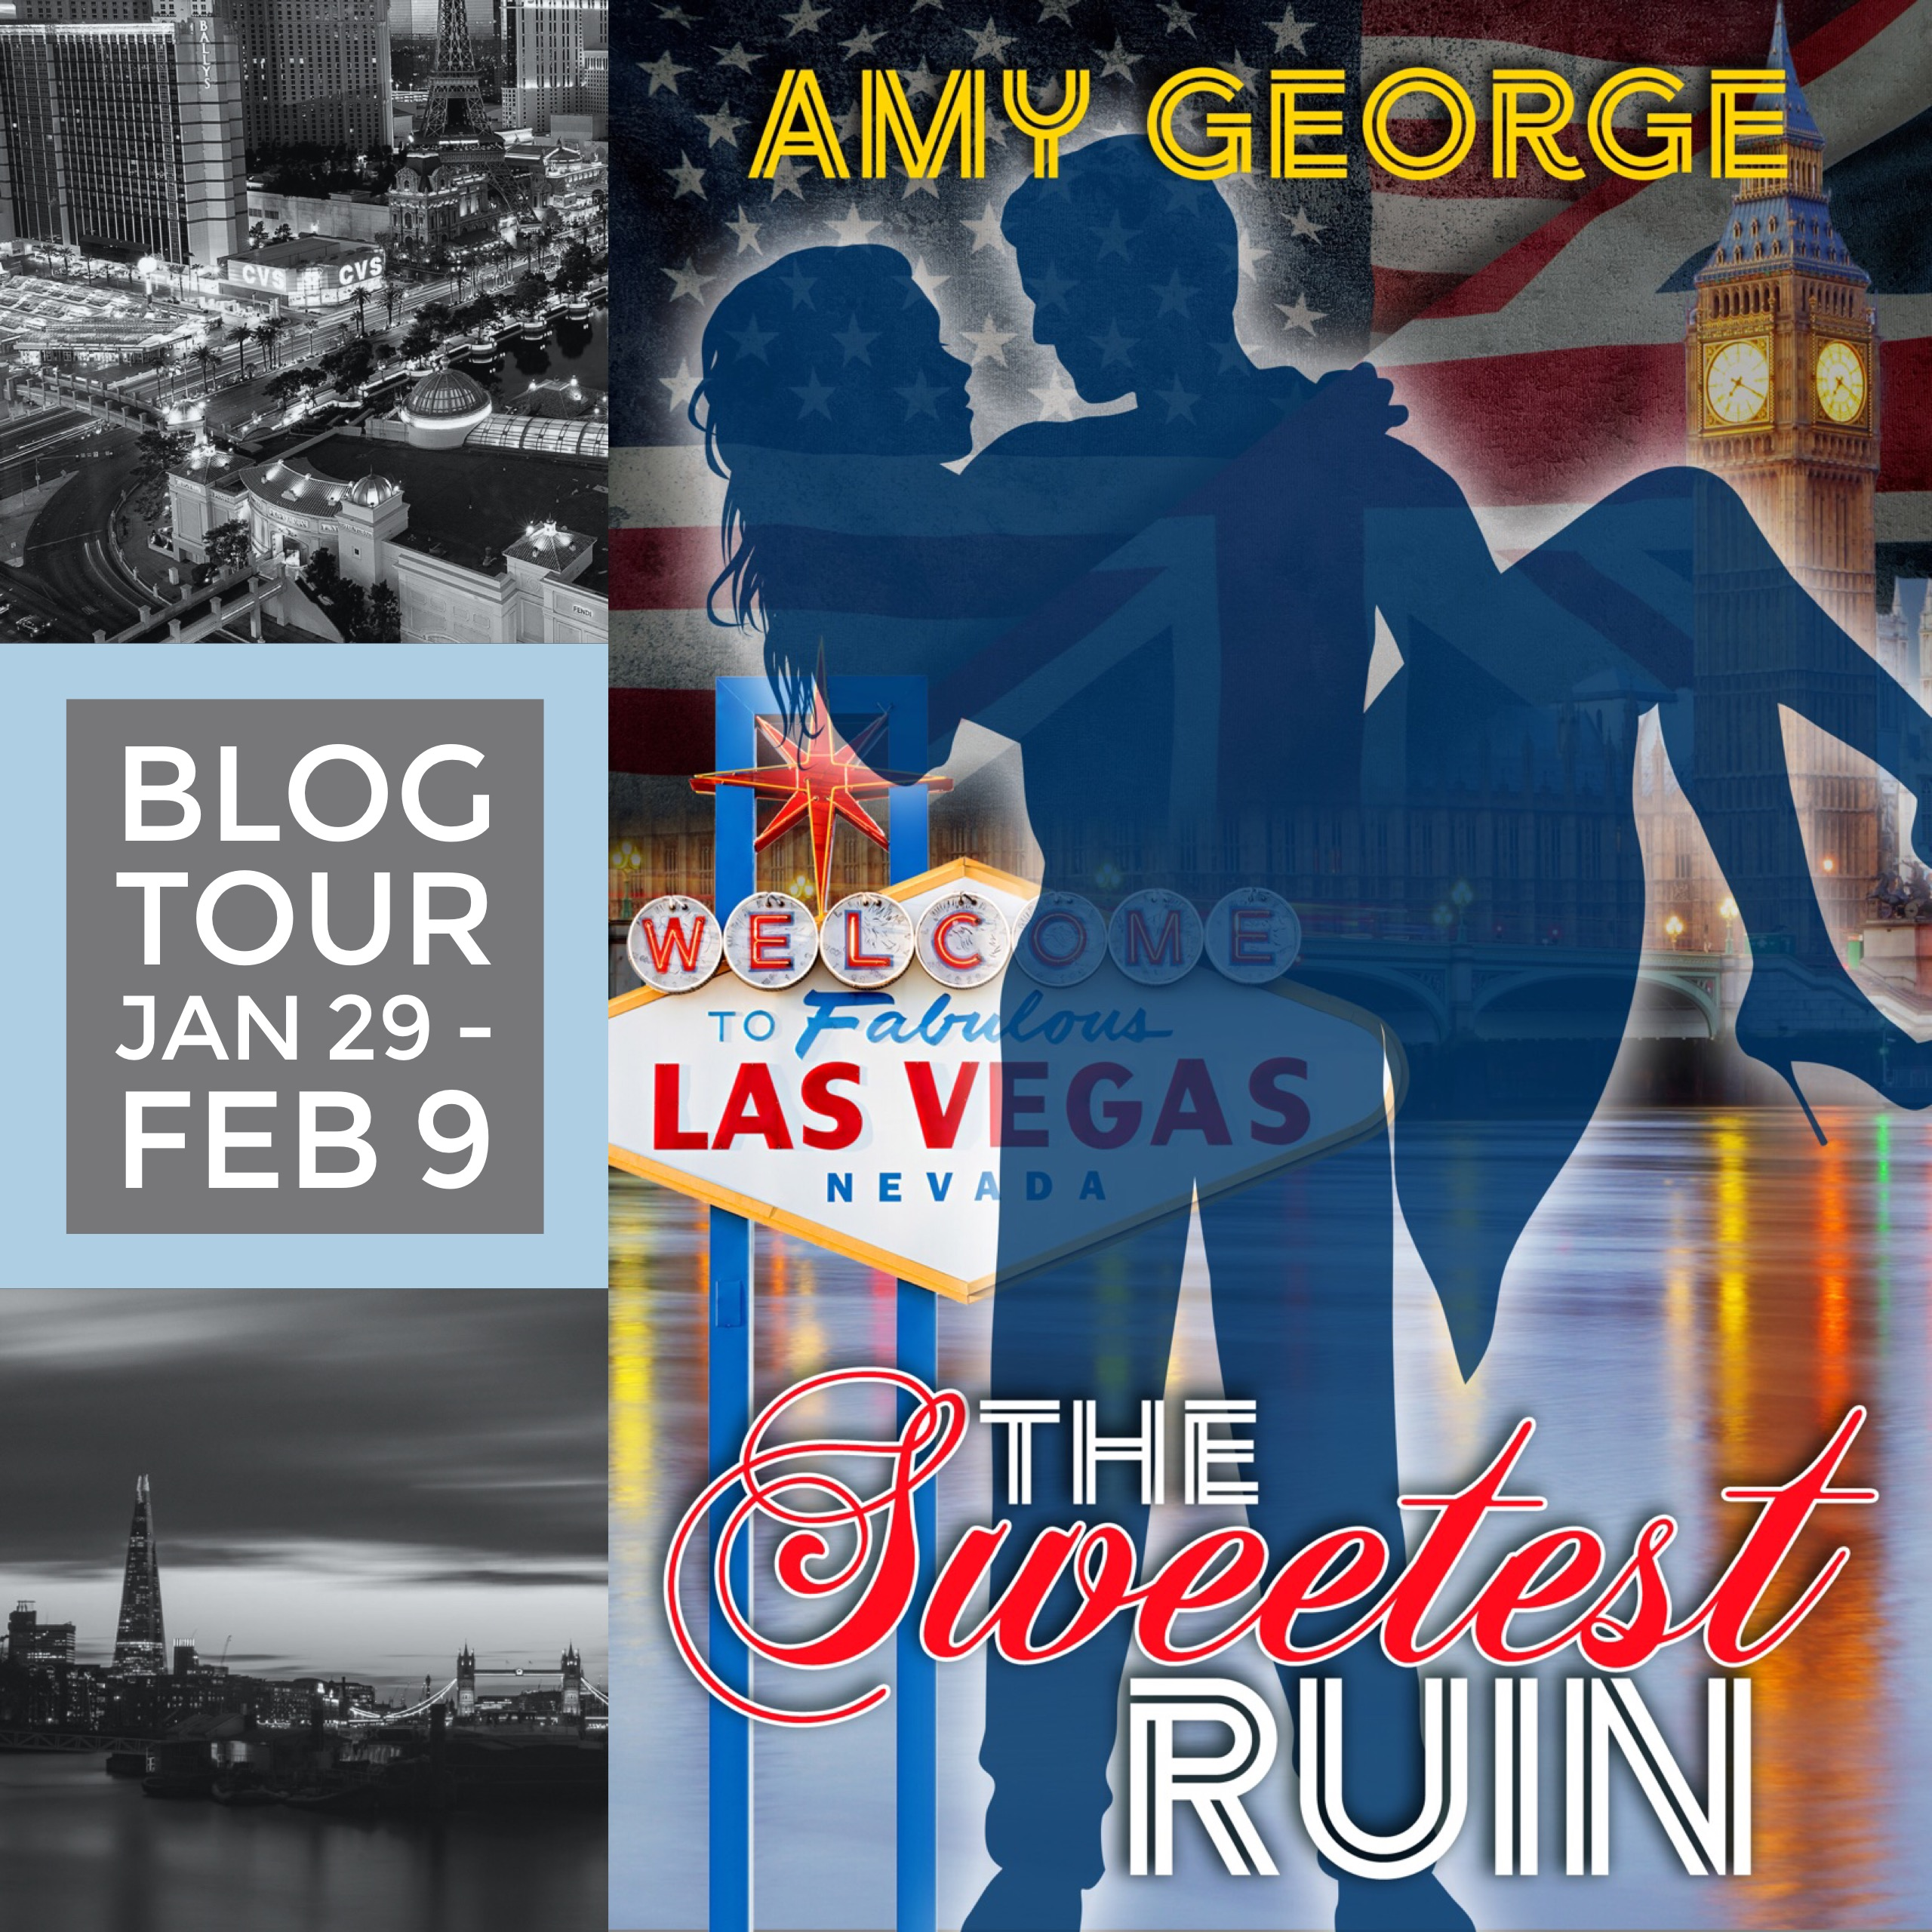 The Sweetest Ruin Blog Tour